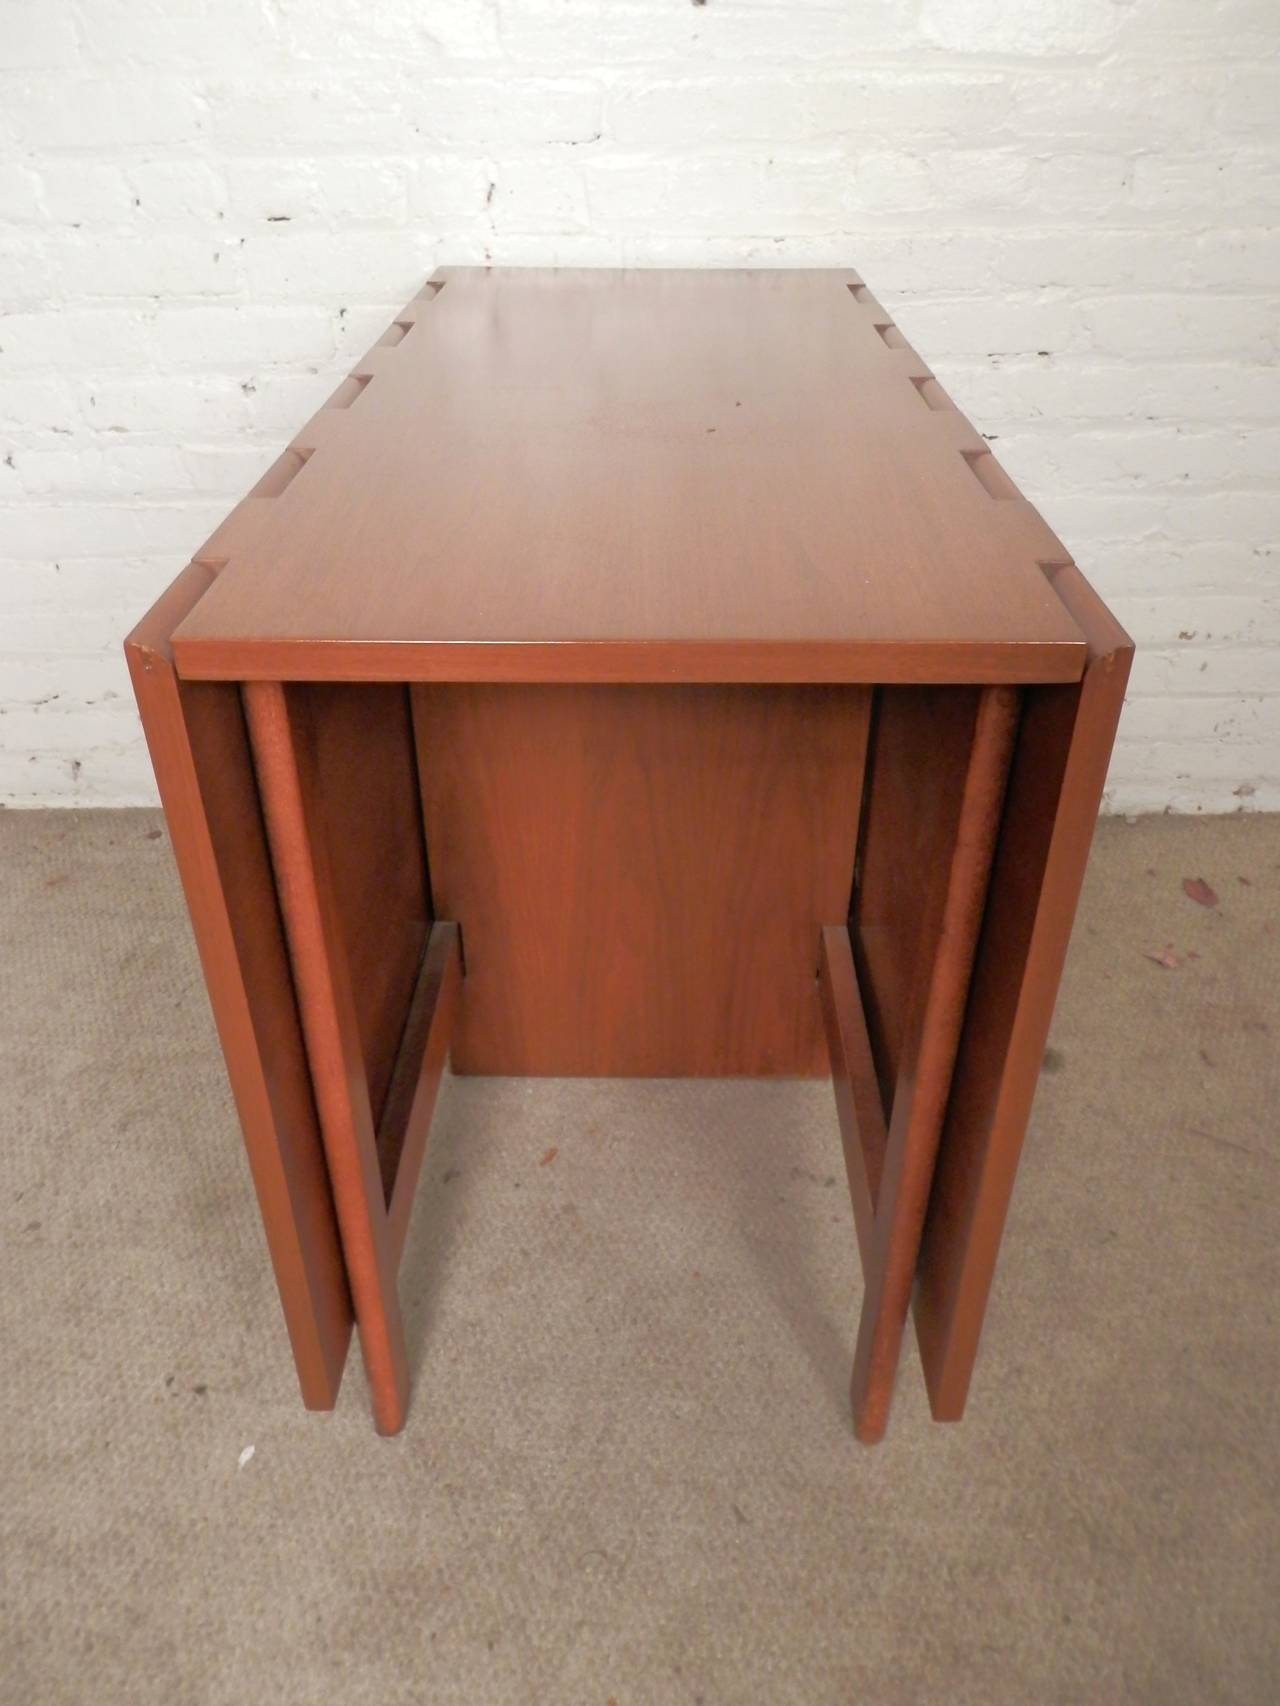 """Vintage modern dining table for Herman Miller featuring the unusual wooden hinged top. Works well in small spaces, and can be adjusted to seat 2 to 6 people or used as a desk or console table. Measures 18-65"""" wide.  (Please confirm item"""